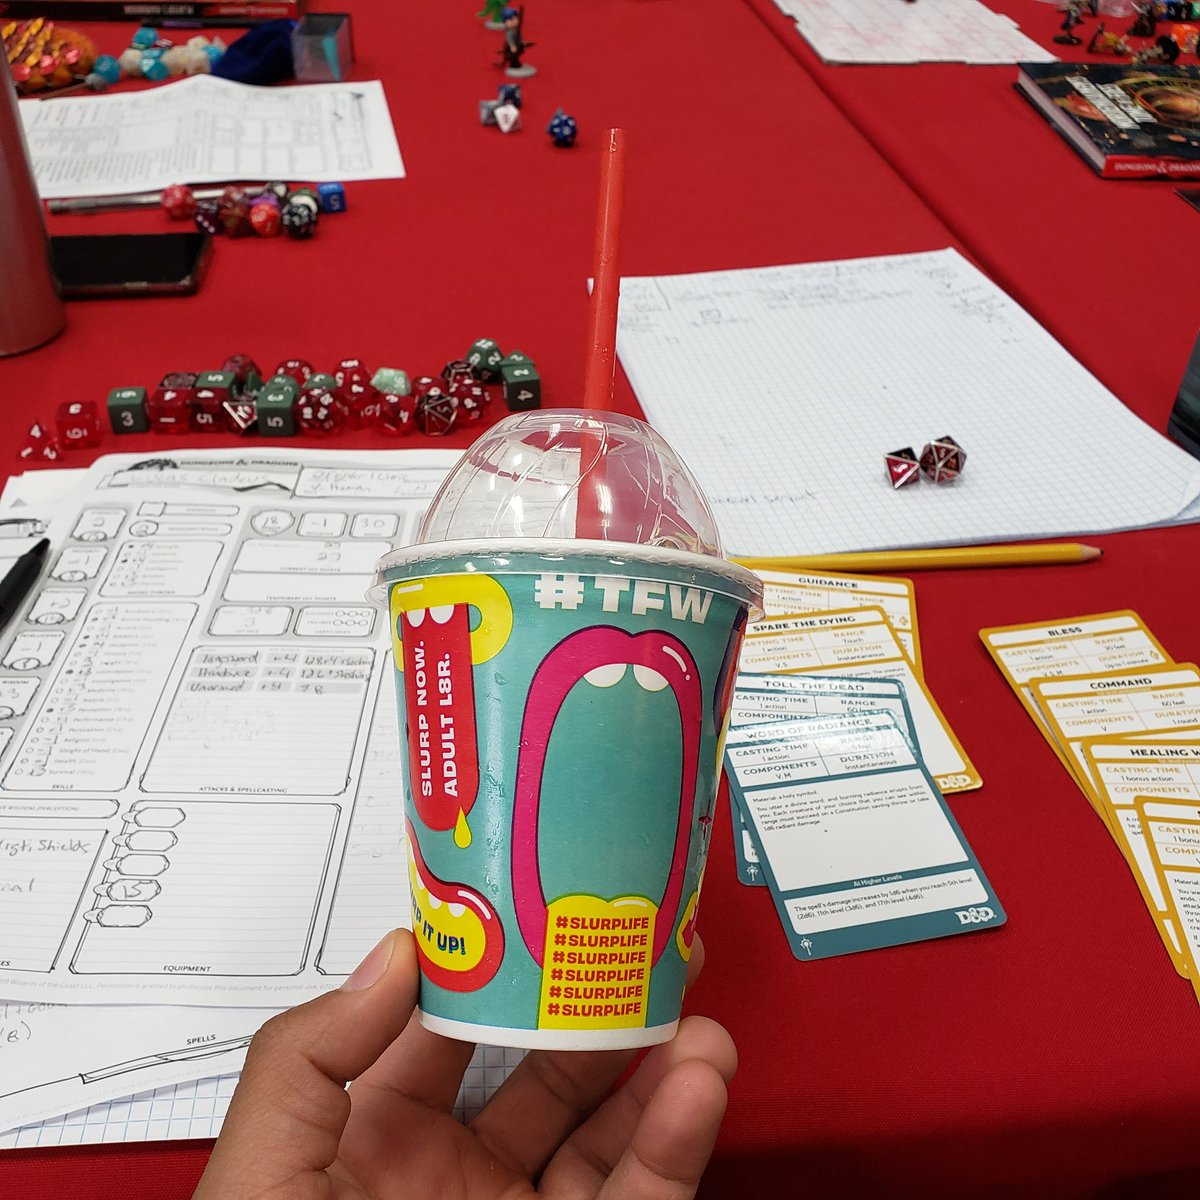 #TFW the game store owner/manager gives out free Slurpees to help beat the heat during our party's decent into Avernus. #Slurplife #DnD<br>http://pic.twitter.com/OV8Ipk7Dcx – à Dice City Games